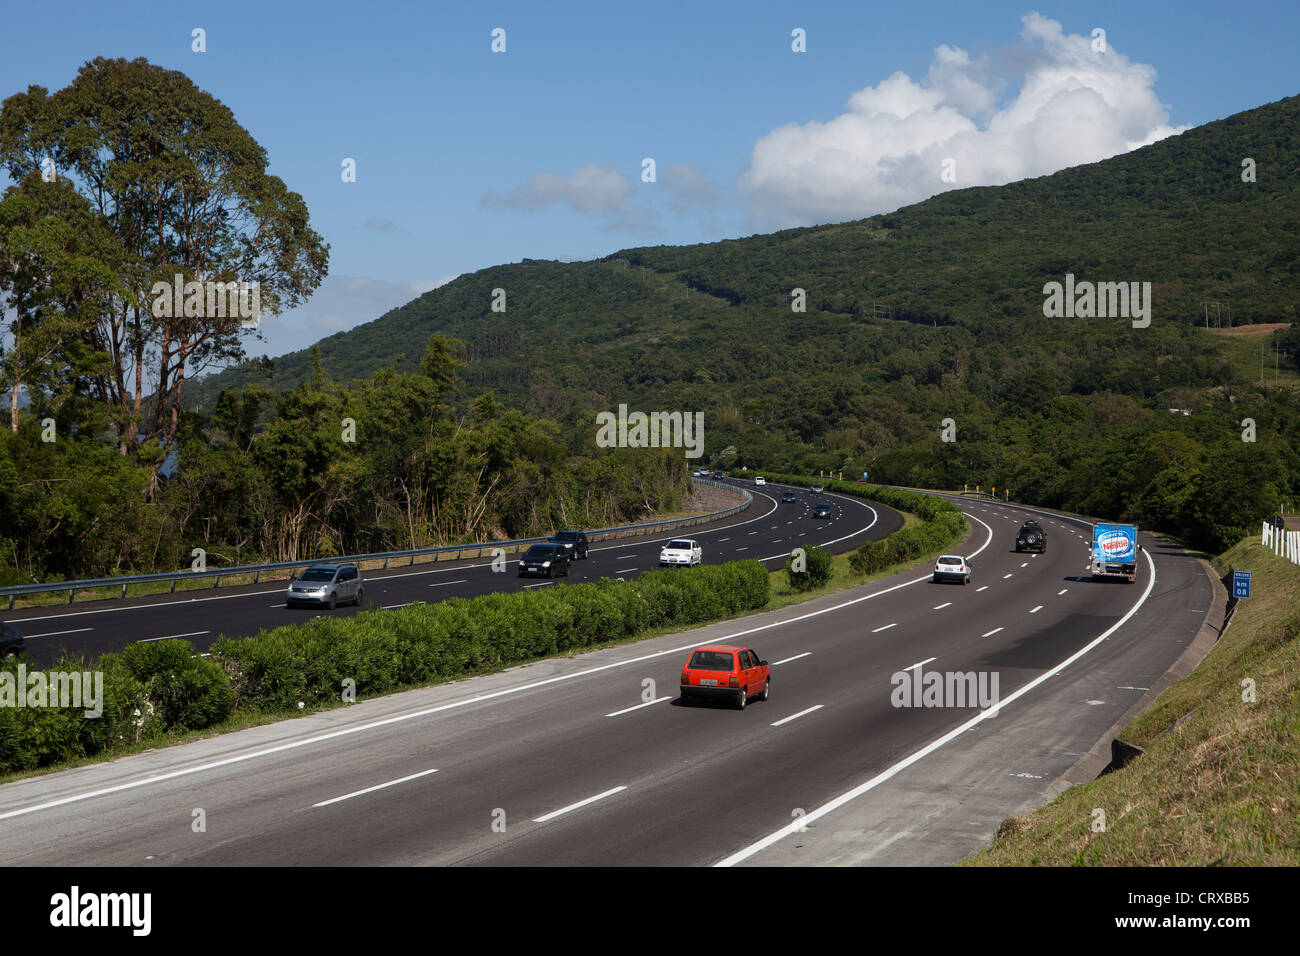 BR-290 - Osvaldo Aranha highway, Rio Grande do Sul State, South Brazil - Free-way - Stock Image